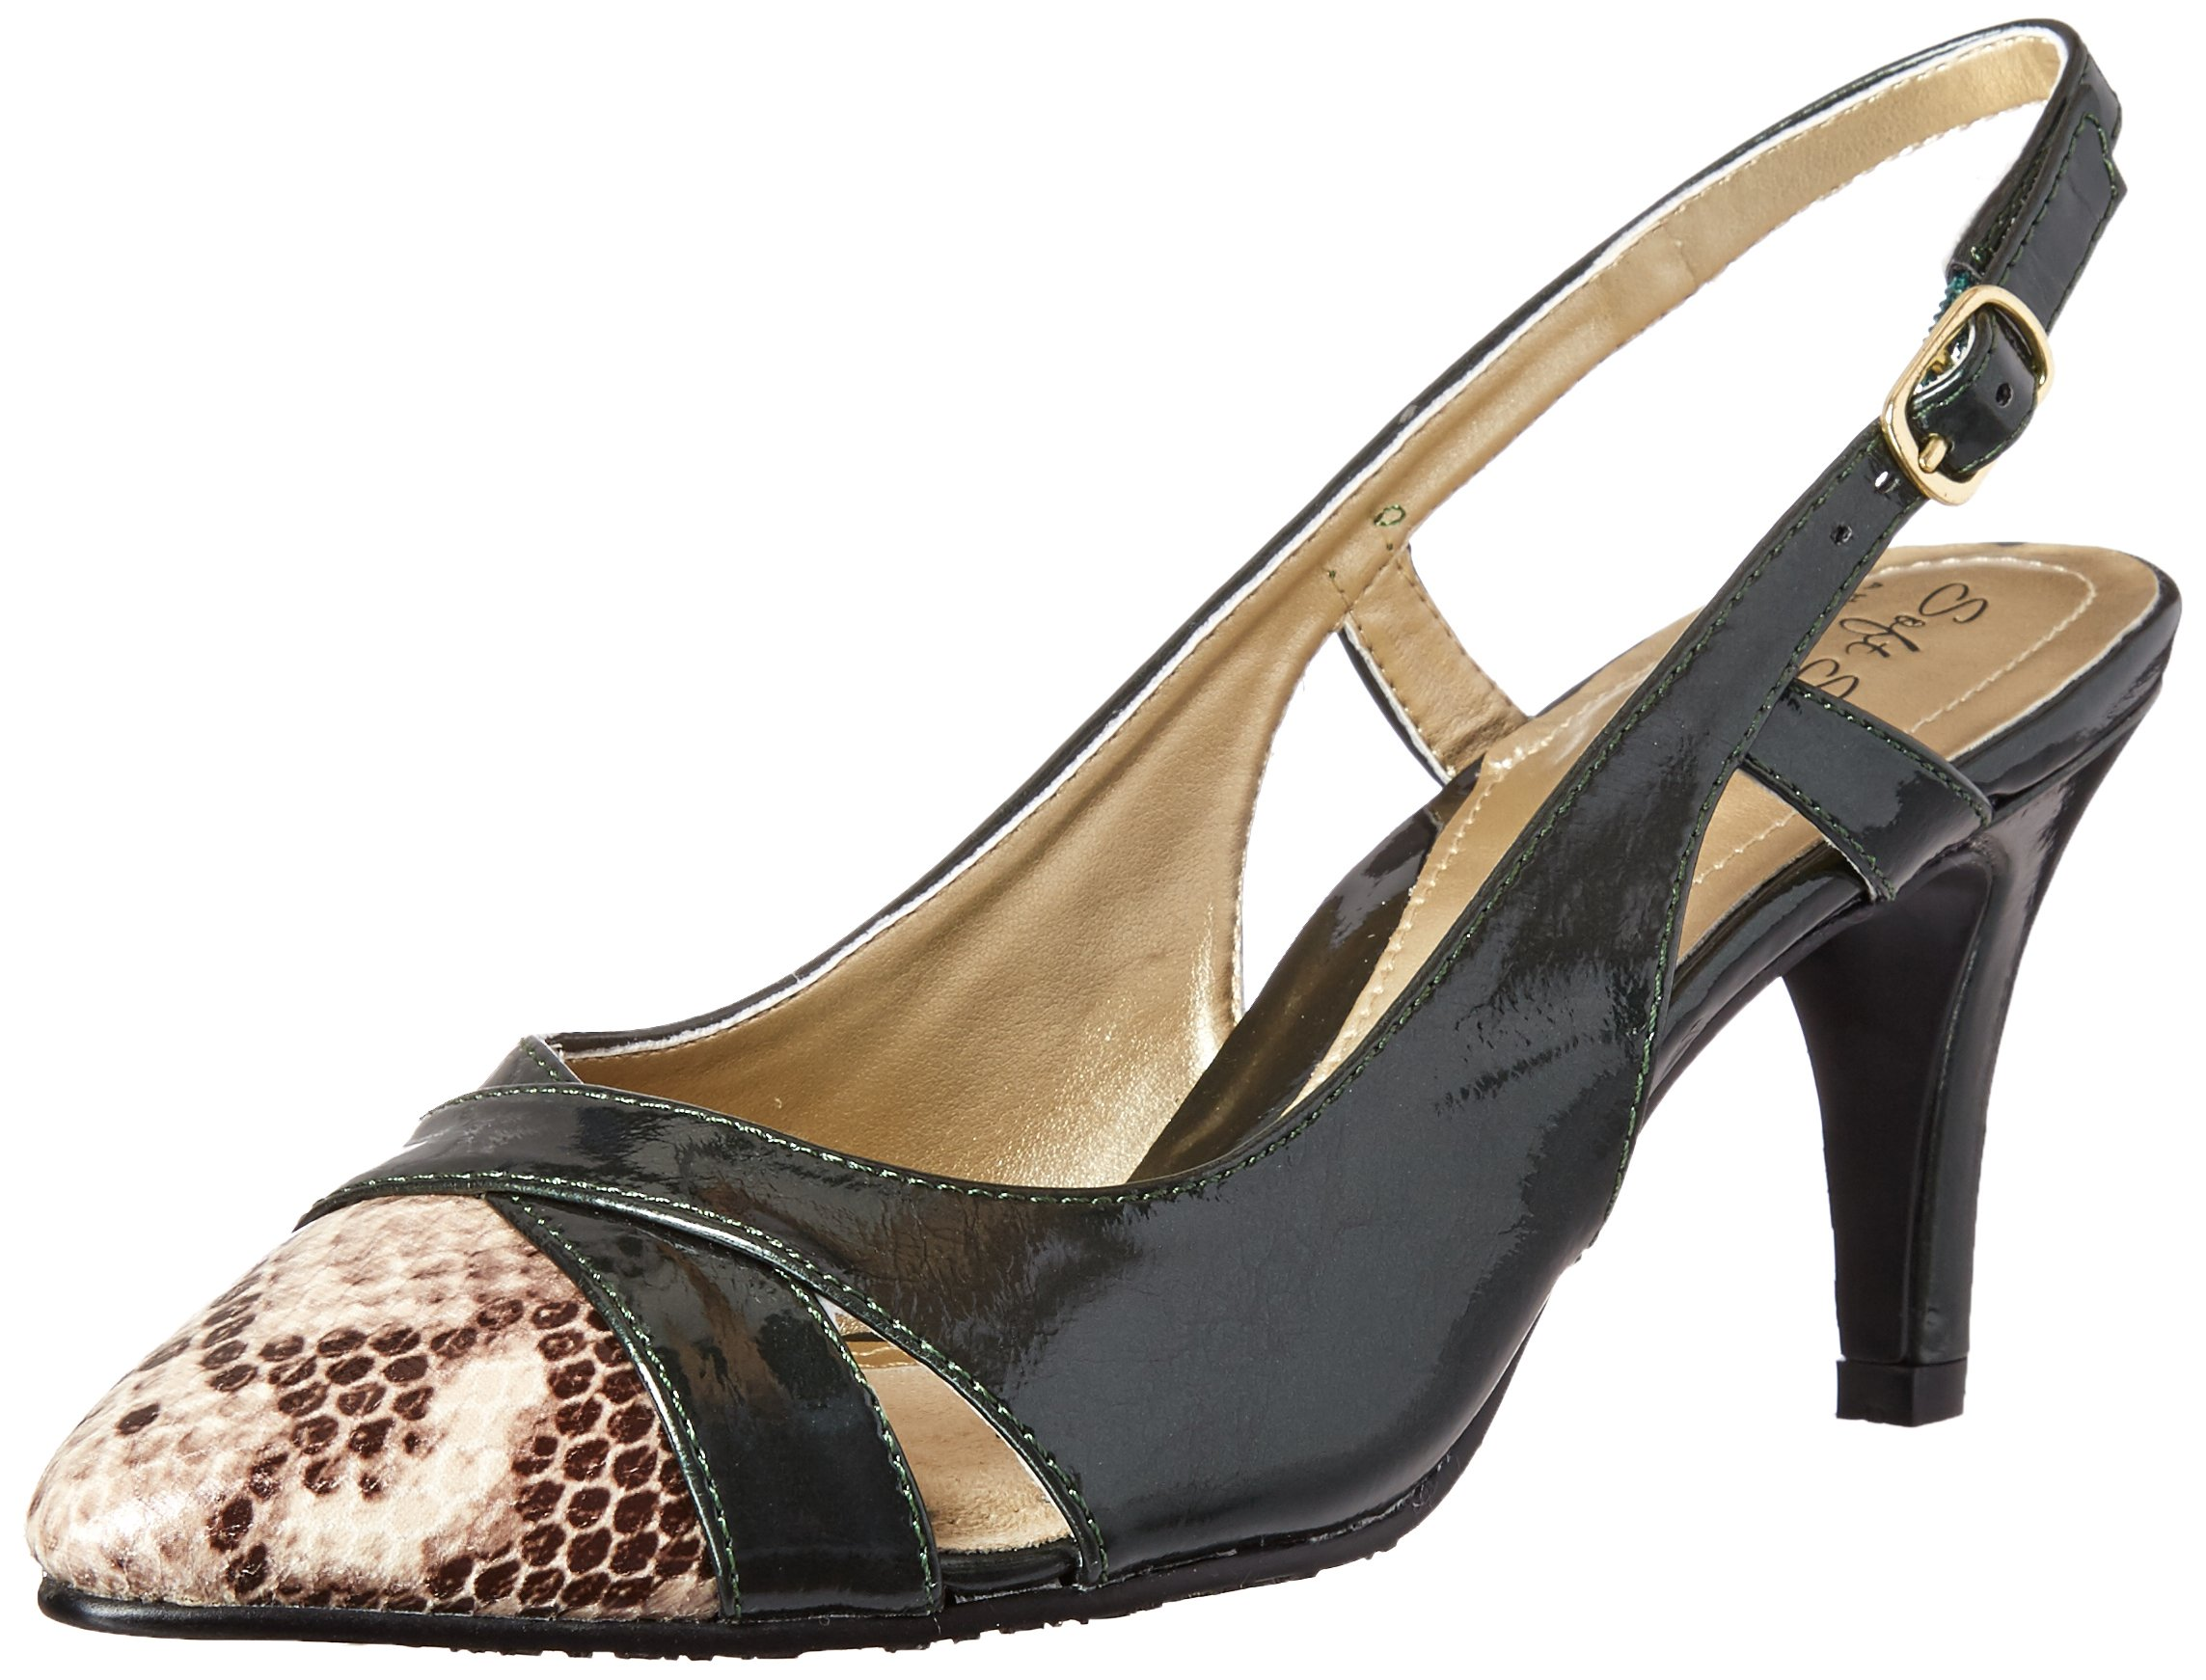 Soft Style by Hush Puppies Women's Rielle Dress Pump, Rosin Pearlized Patent/Python, 8 M US